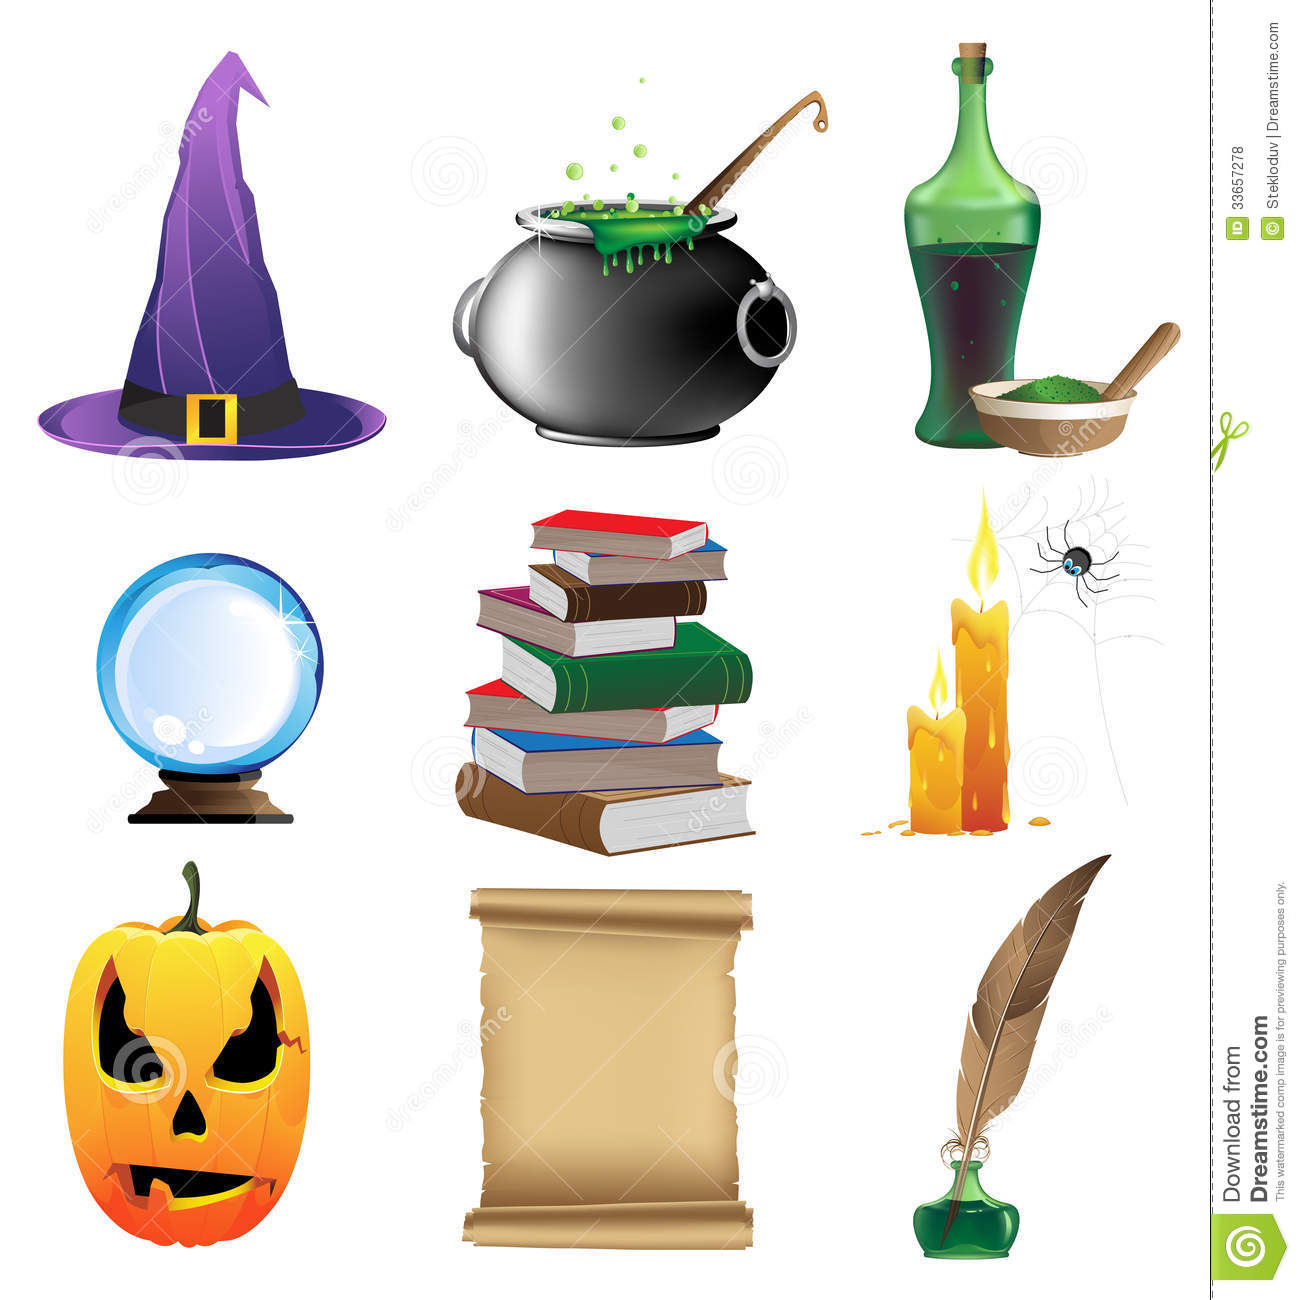 magic objects royalty free stock photos image 33657278 free st patrick's day clip art and graphics free st patrick's day clip art svg